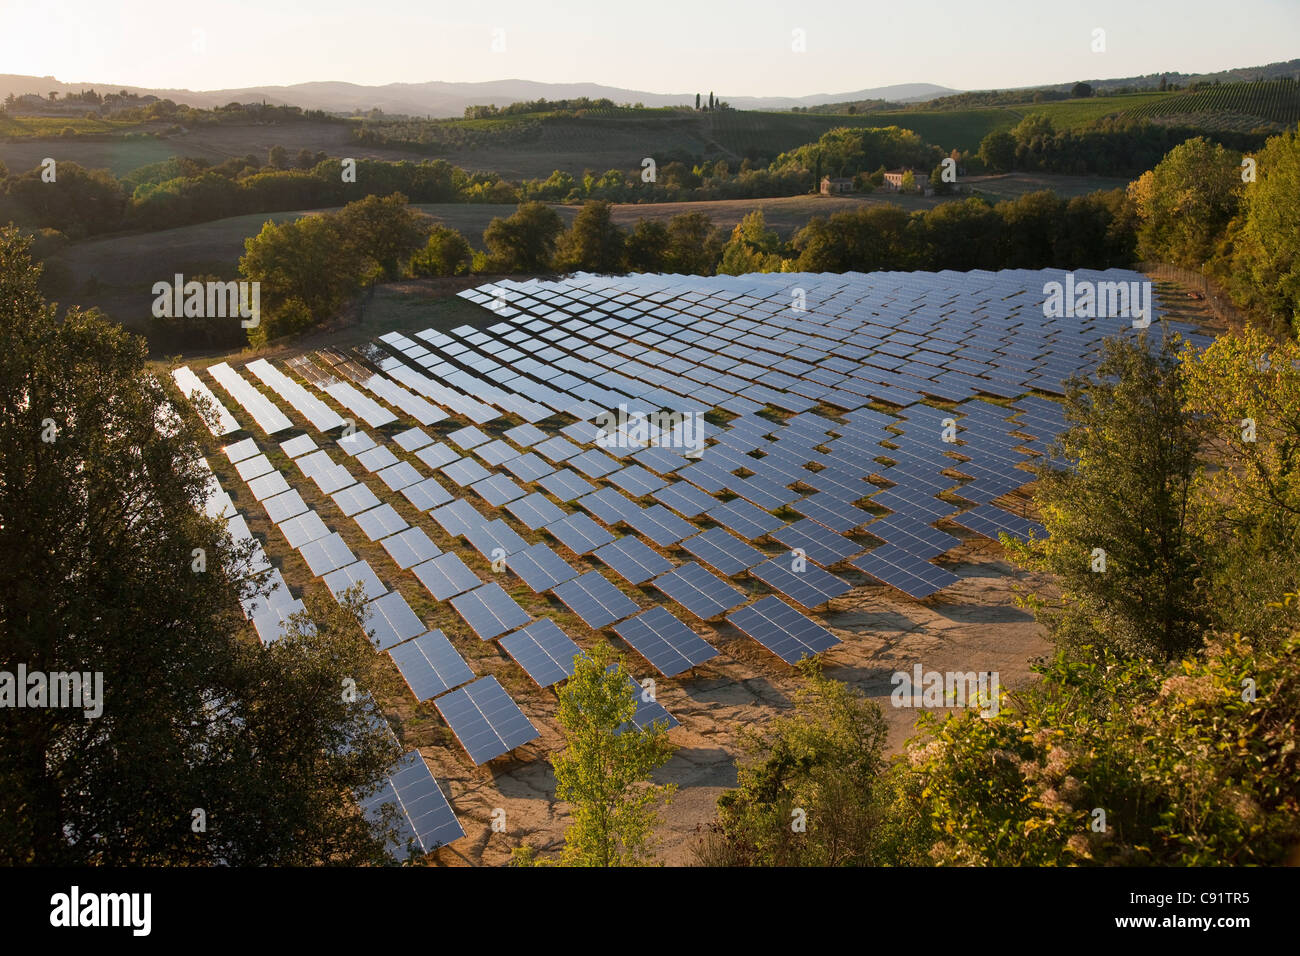 Aerial view of field of solar panels - Stock Image